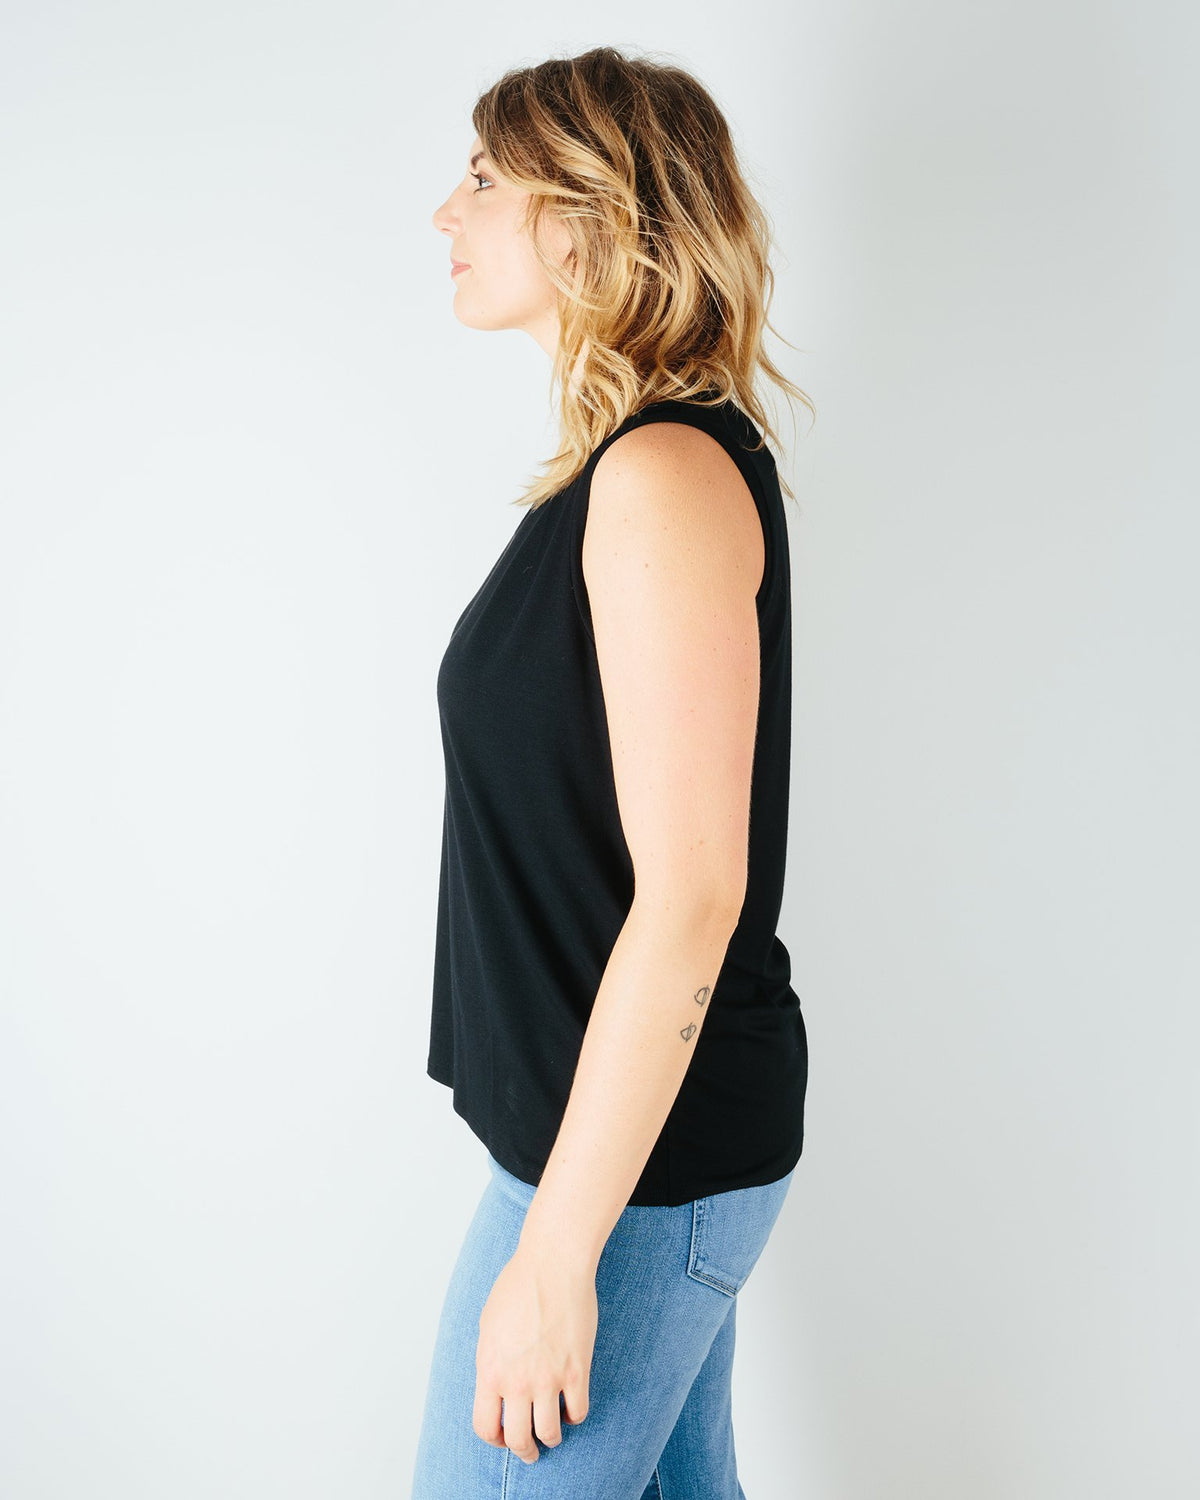 Sarah Liller San Francisco Clothing Chloe Tee in Black